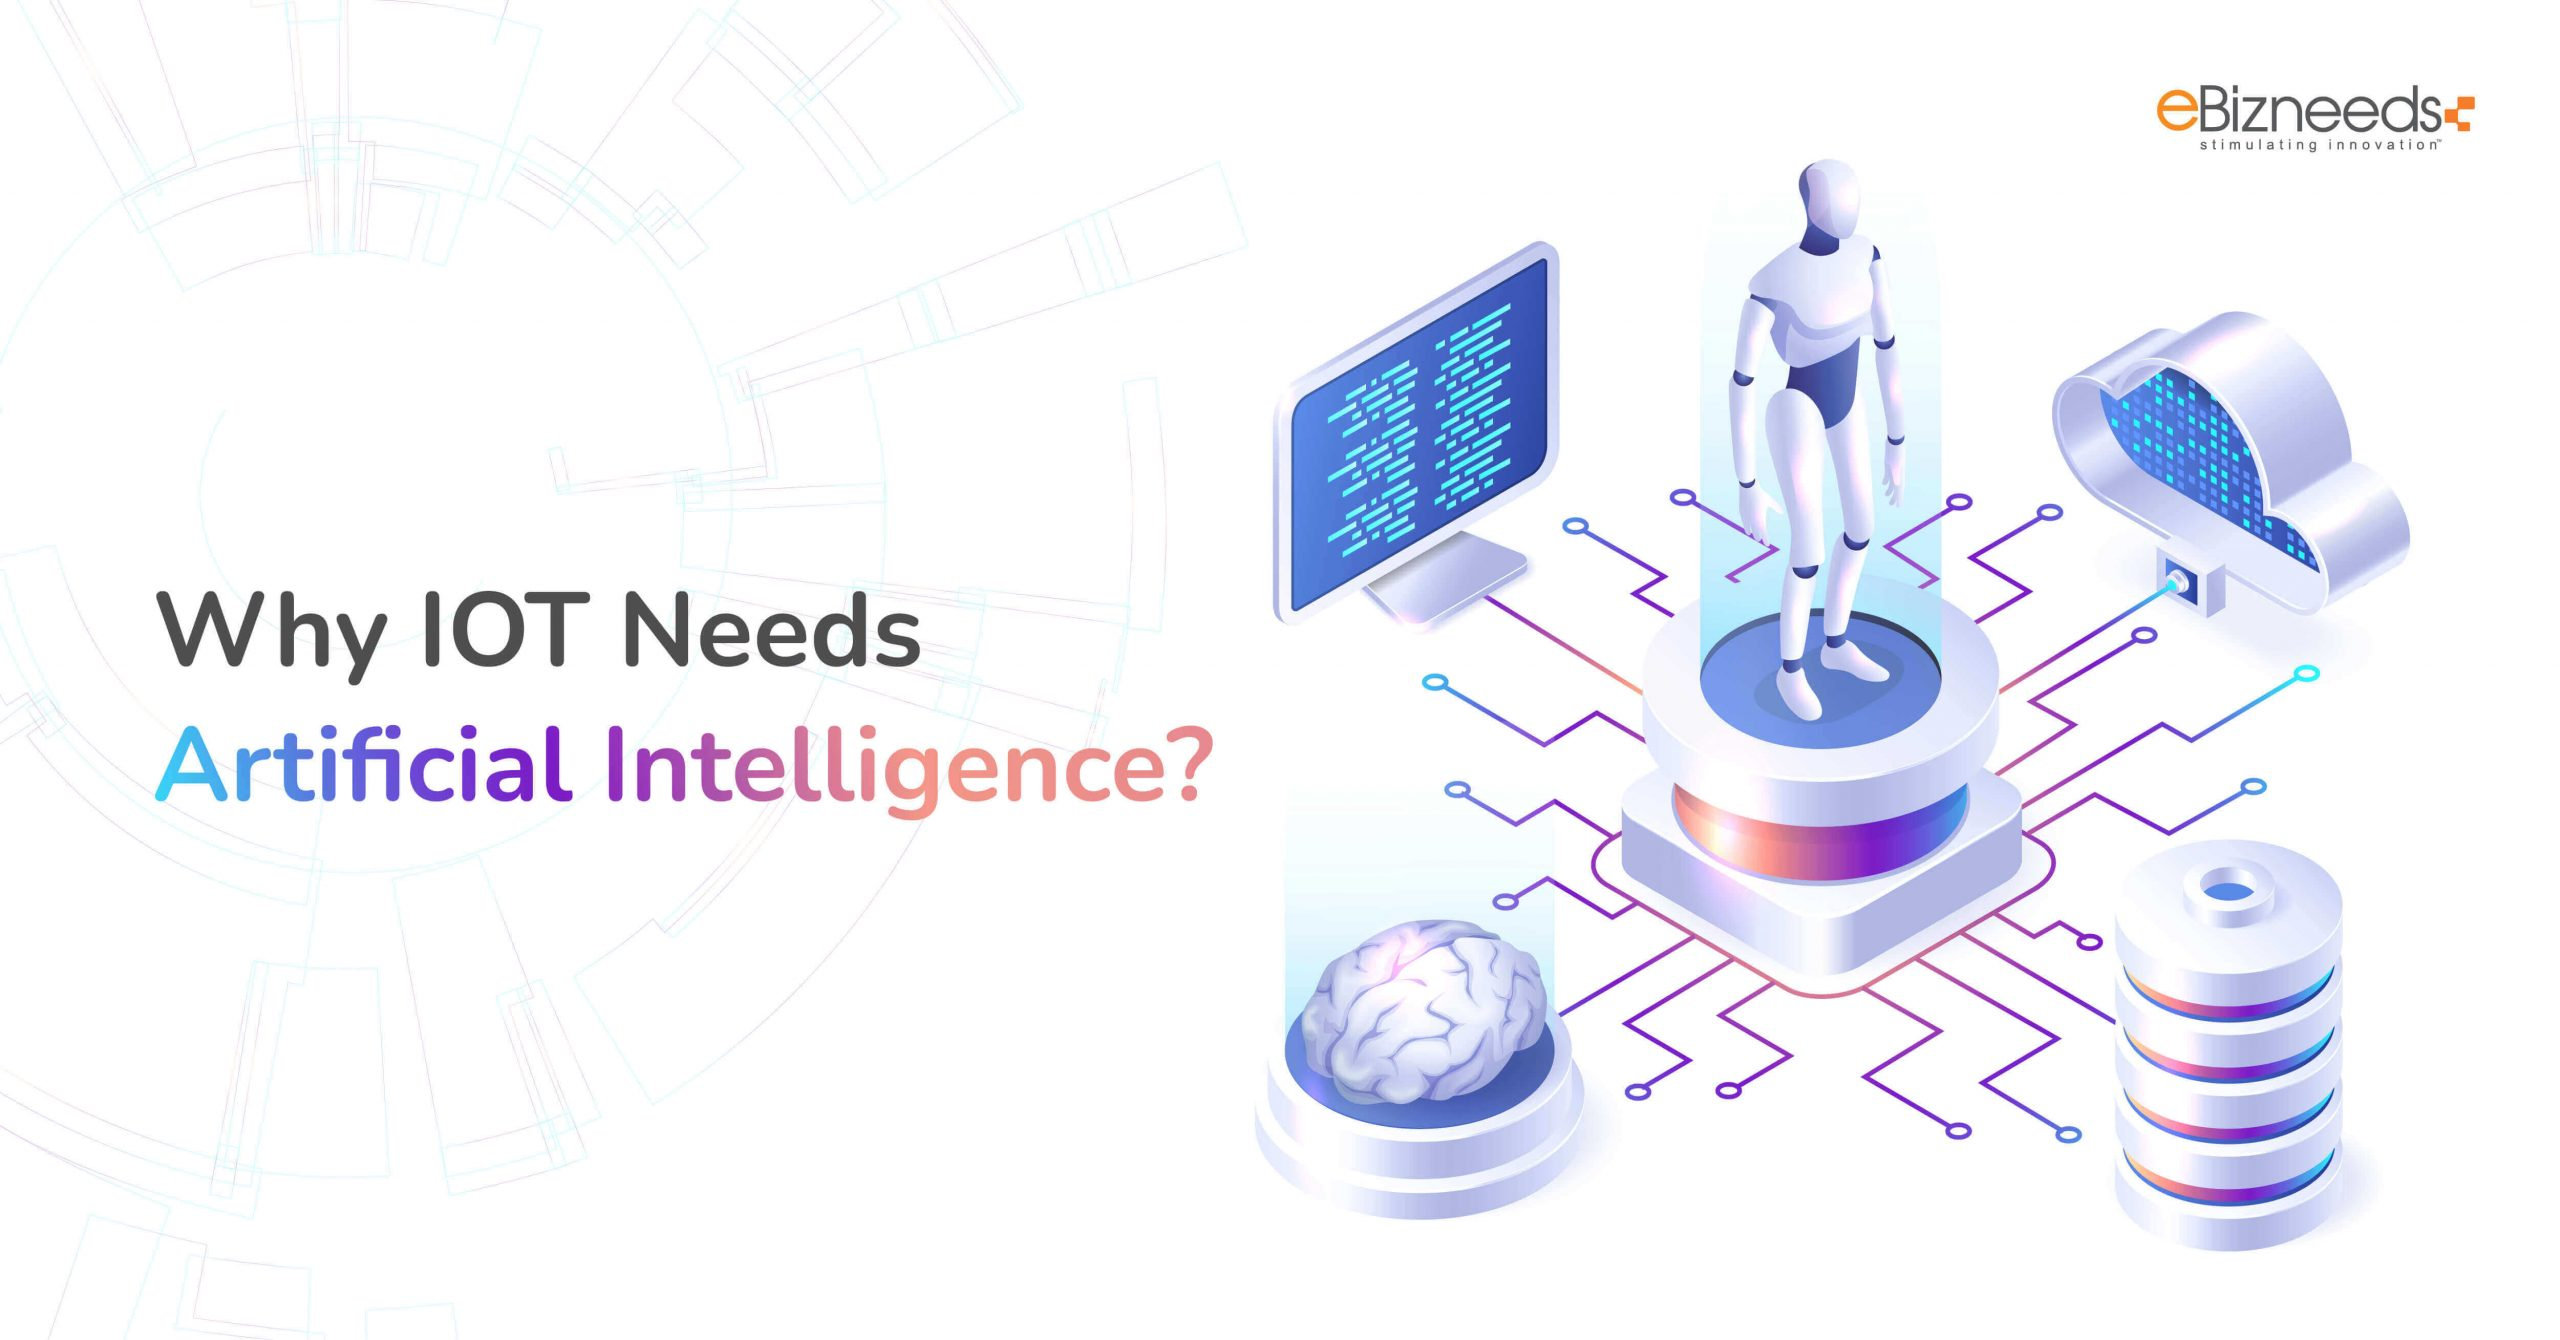 Why Internet of things needs Artificial intelligence